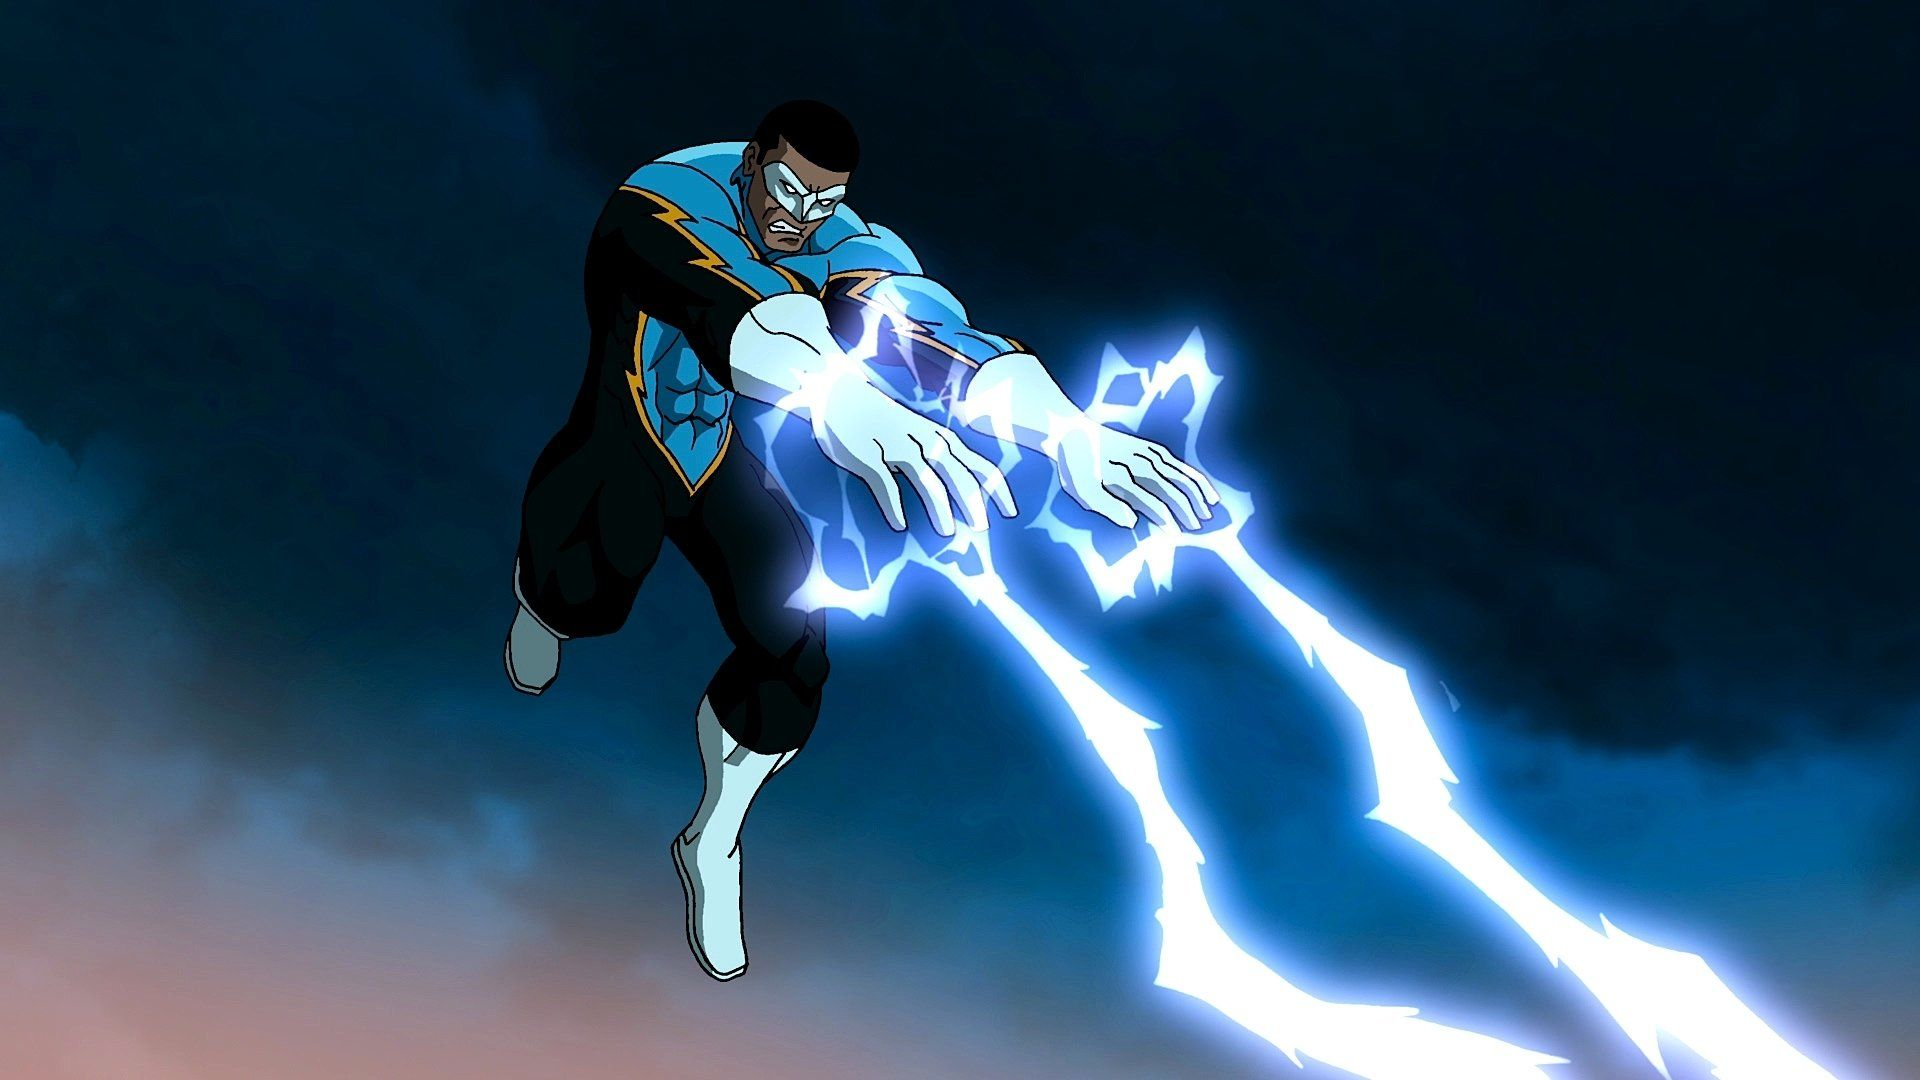 Black Lightning Wallpaper and Background | 1280x960 | ID:232131